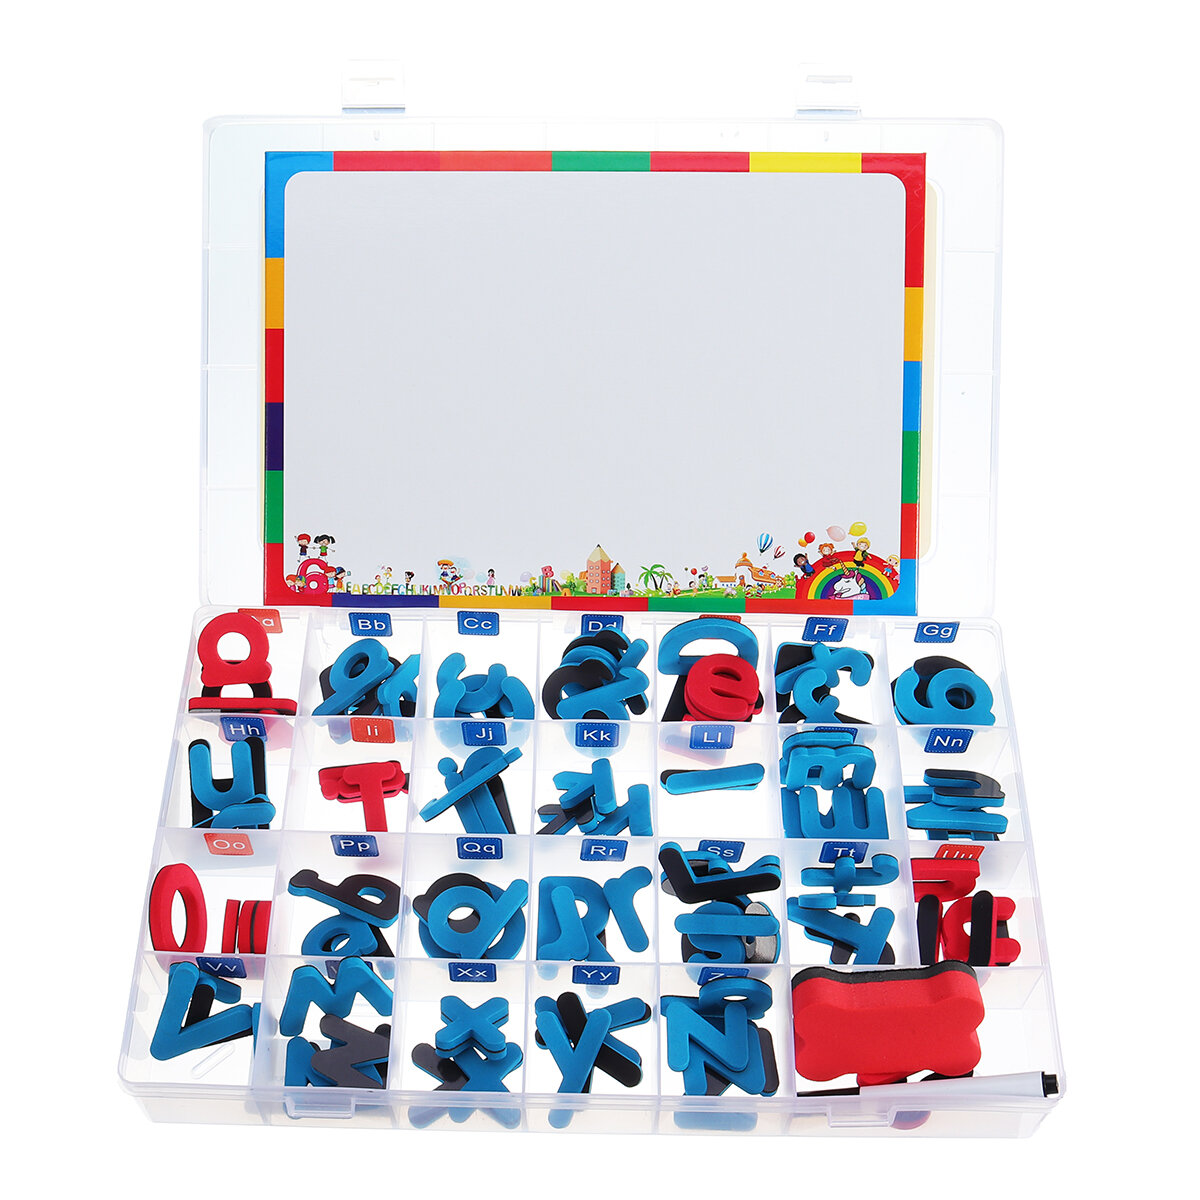 Childrens Magnetic Learning Alphabet Letters Numbers Drawing Whiteboard Alphabet Uppercase Lowercase Letters Educational